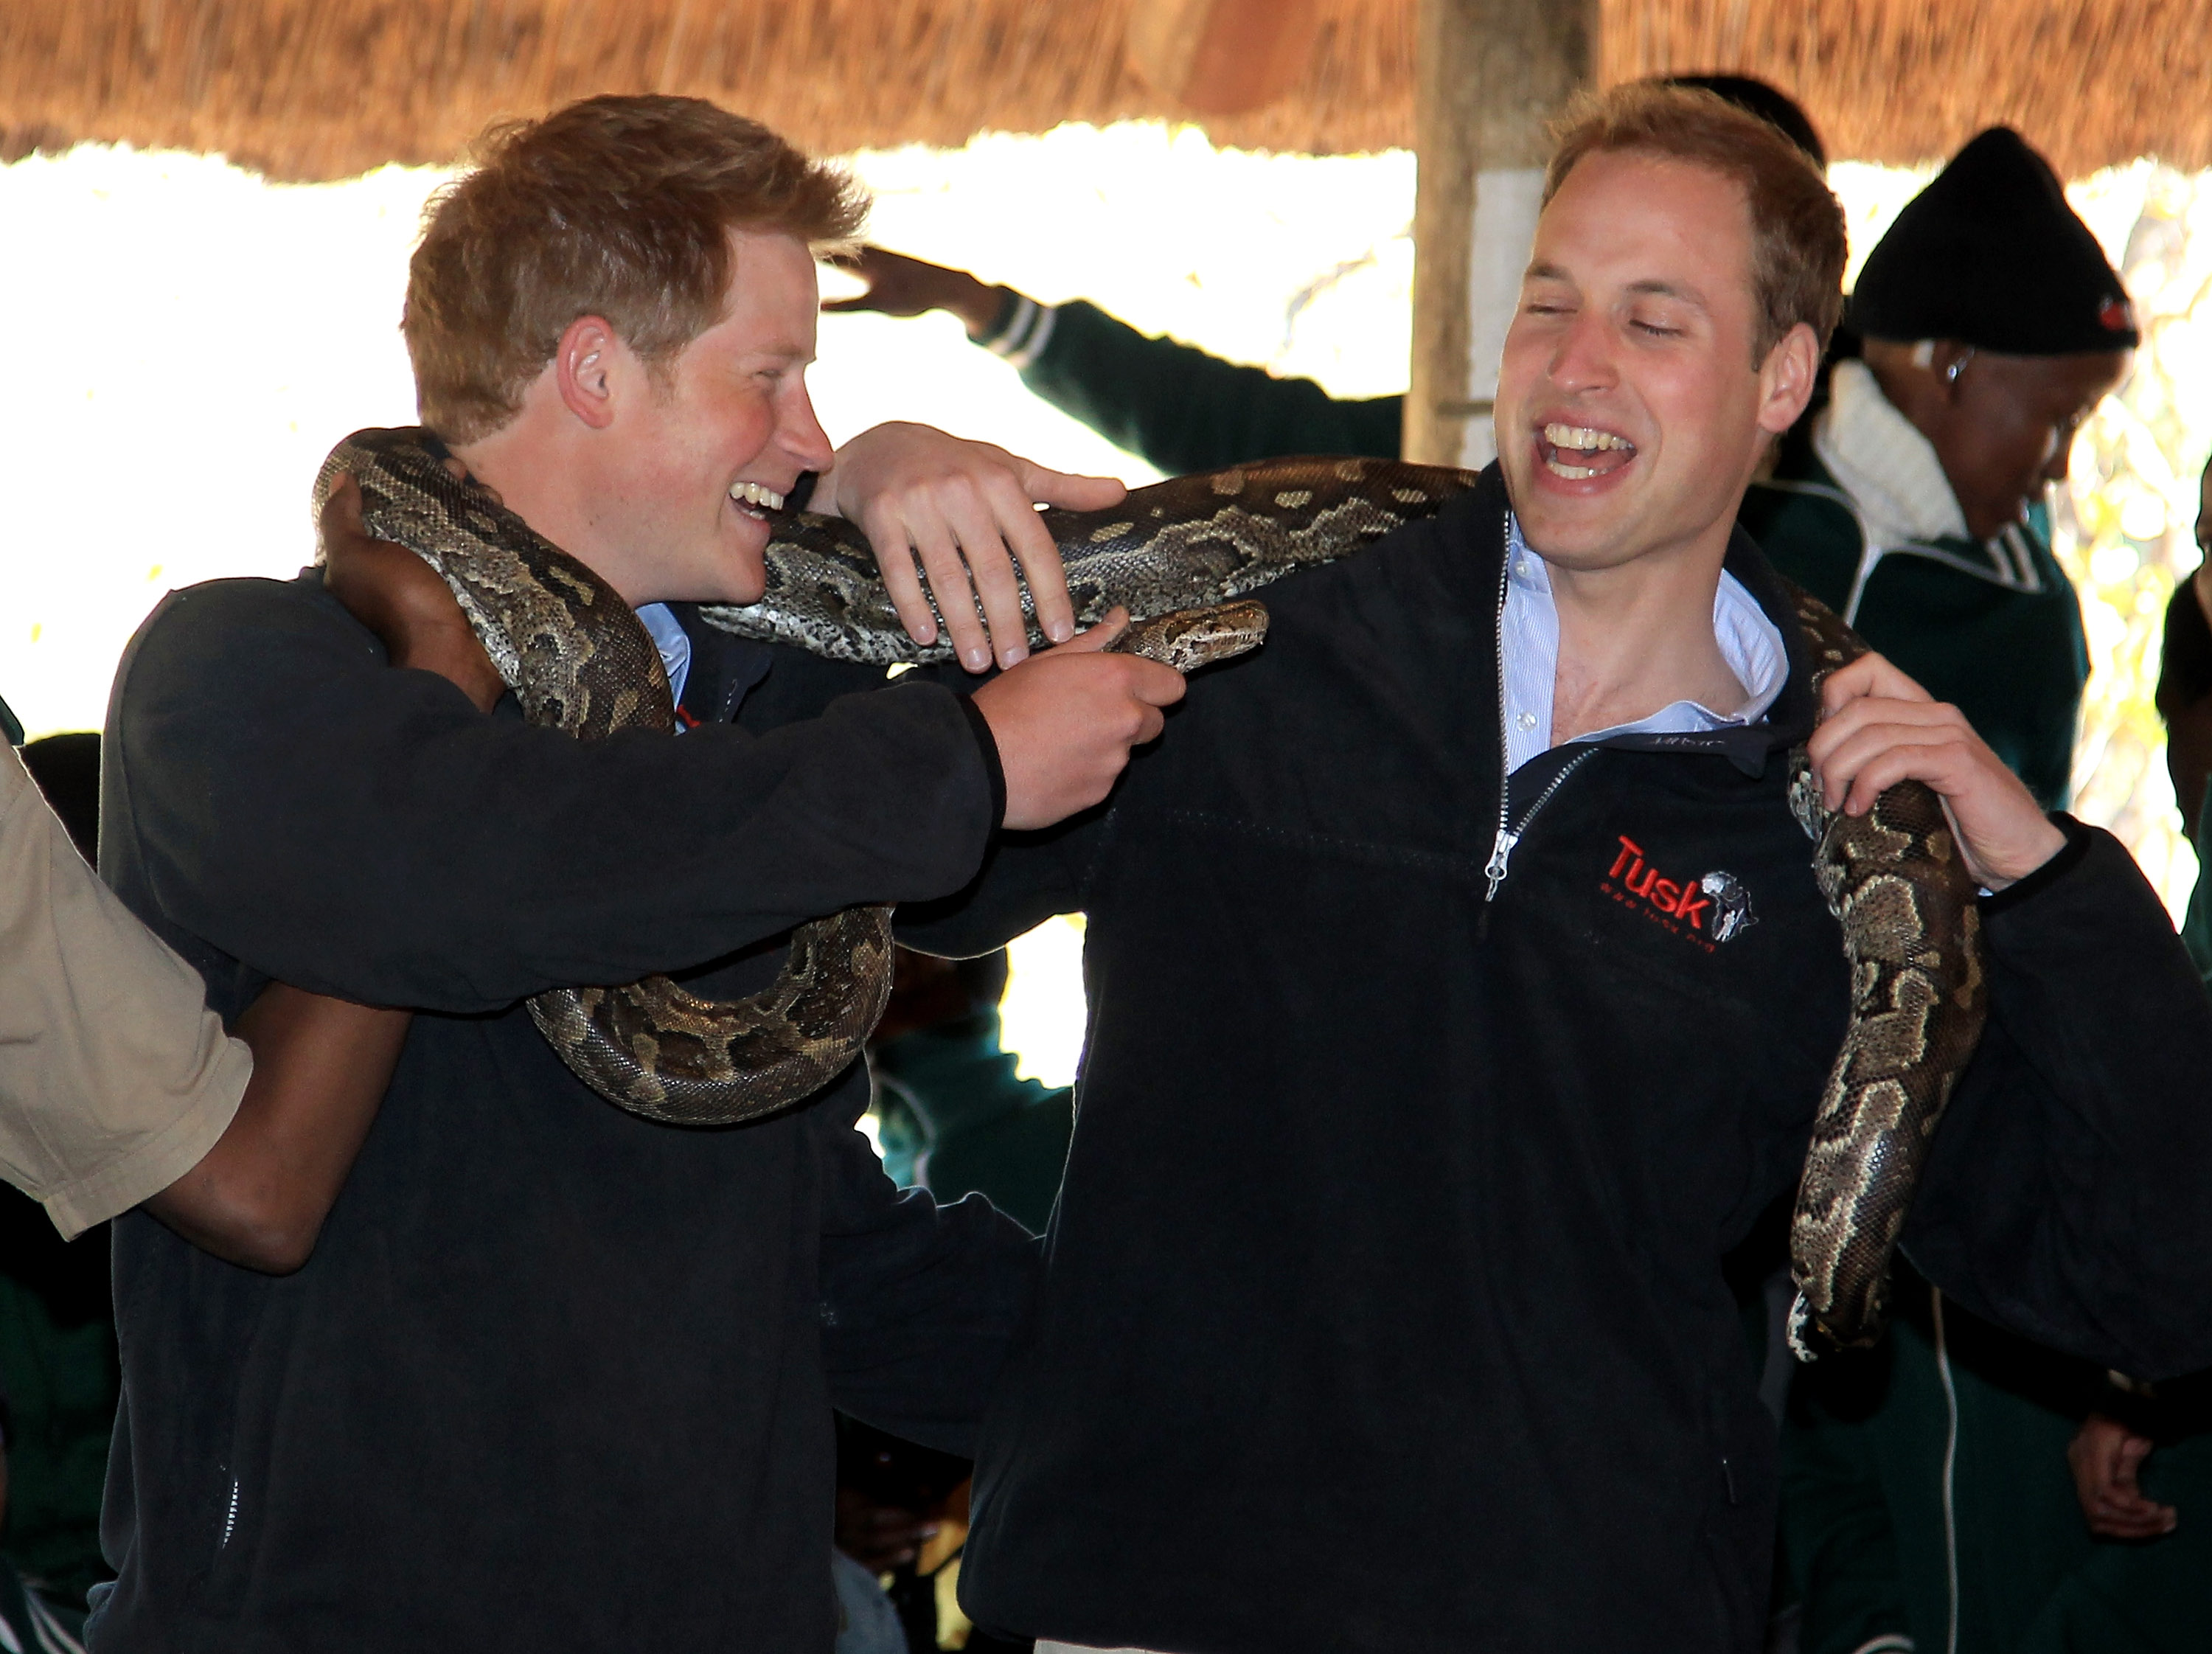 GABORONE, BOTSWANA - JUNE 15: Prince Harry and Prince William (R) hold an African rock python during a visit to Mokolodi Education Centre on June 15, 2010 in Gaborone, Botswana. The Princes are on a six day joint trip to Africa to visit charities they support across Botswana, Lesotho and finally South Africa. (Photo by Chris Jackson/Getty Images)